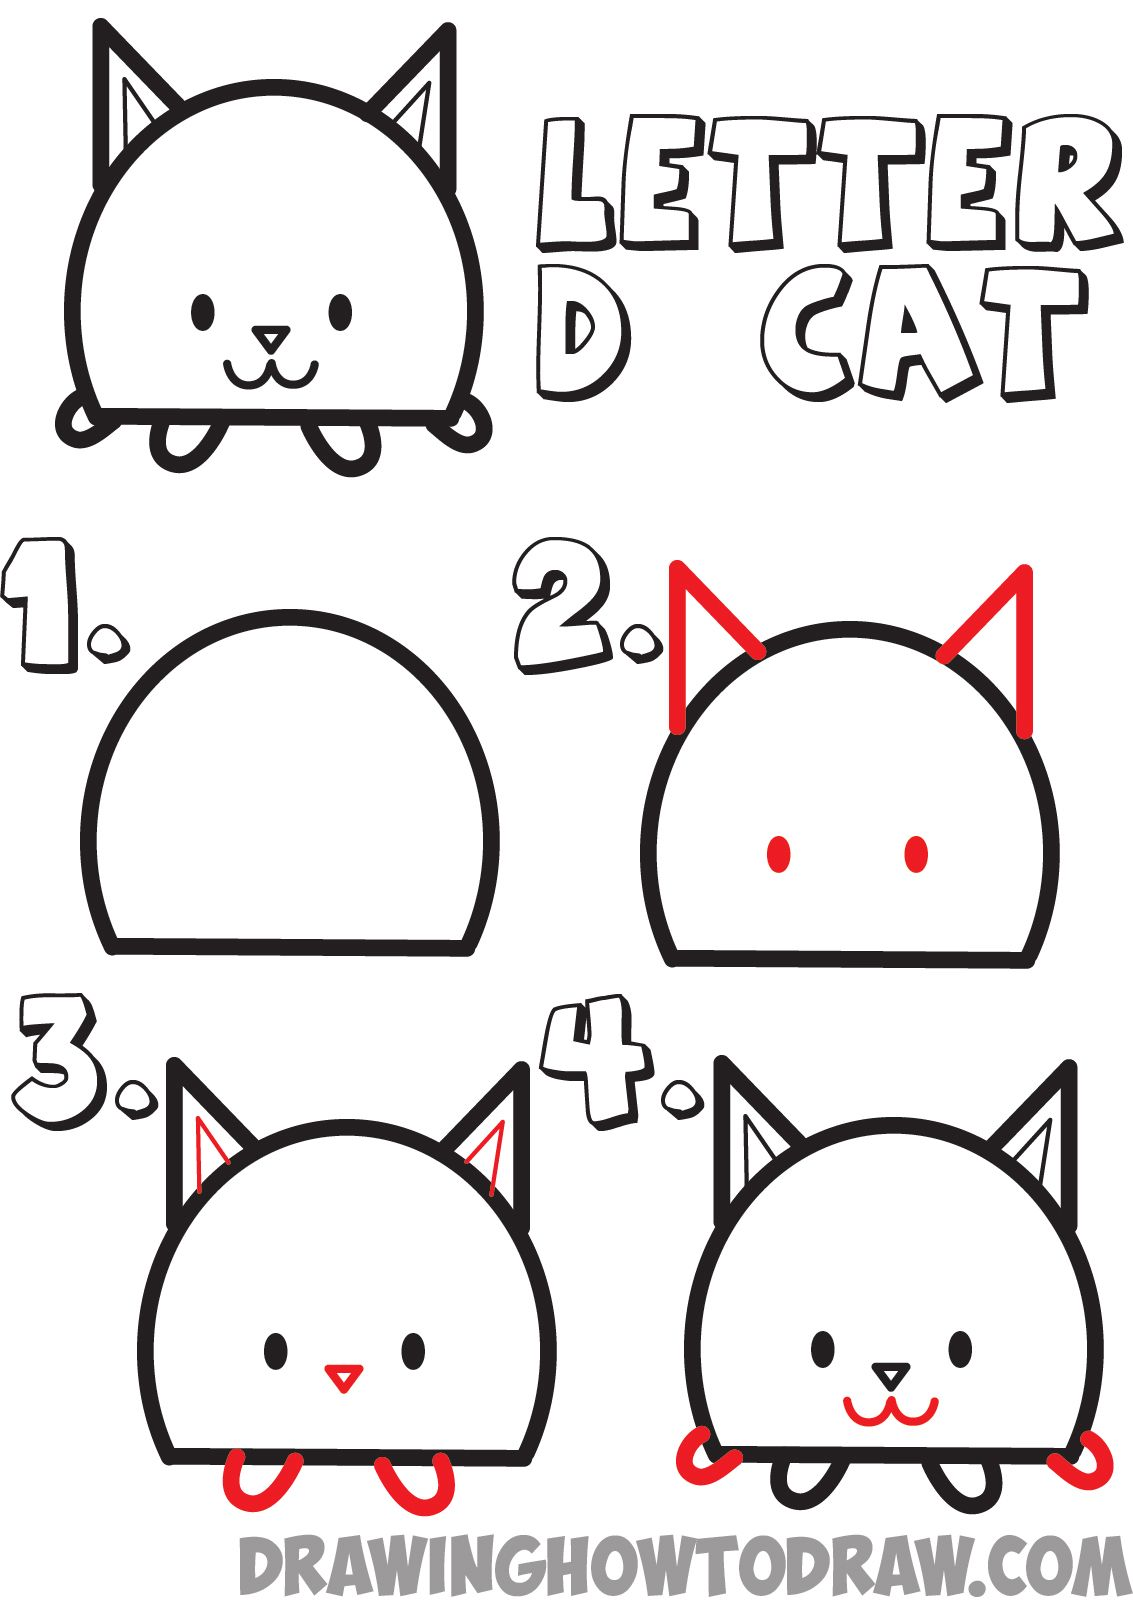 Huge Guide To Drawing Cartoon Animals From The Uppercase Letter D Drawing Tutorial For Kids Cartoon Cat Drawing Cartoon Drawings Sketches Cartoon Drawings Of Animals